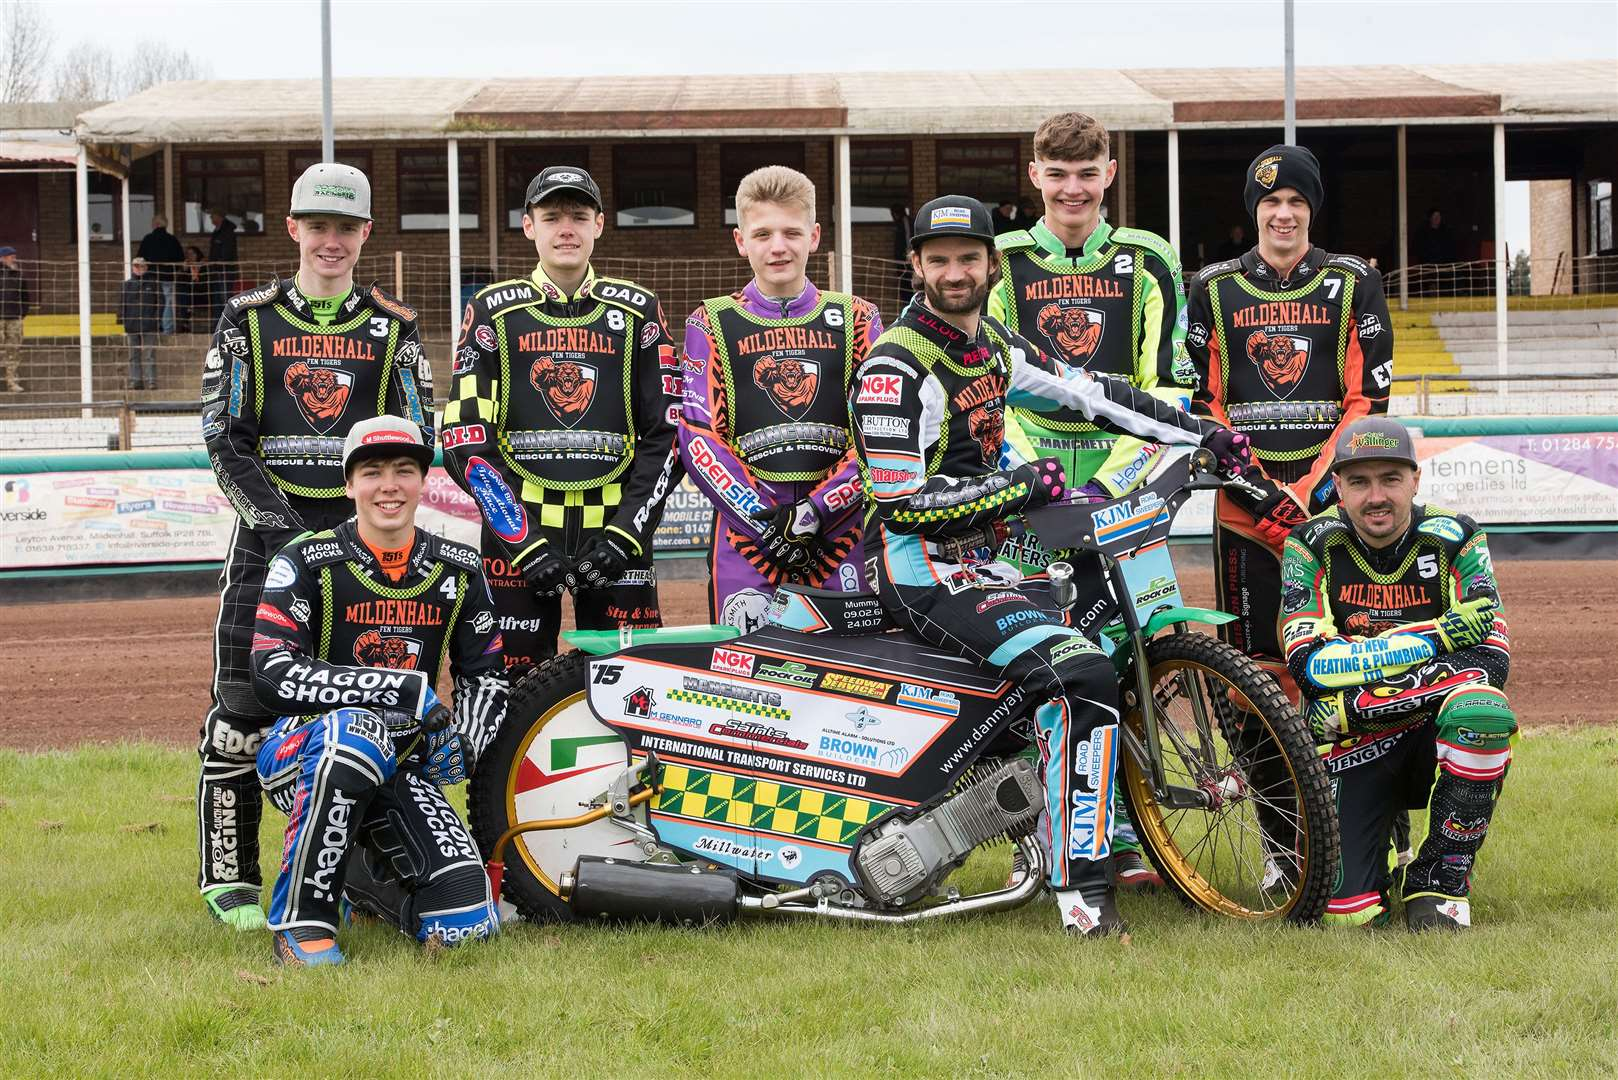 Mildenhall Fen Tigers Press and Practice DayFen Tigers team 2019 Danny Ayres, Sam Bebee, Charlie Brooks, Jason Edwards, Dave Wallinger, Elliot Kelly, Macauley Leek and Sam Norris Picture by Mark Westley. (28356758)